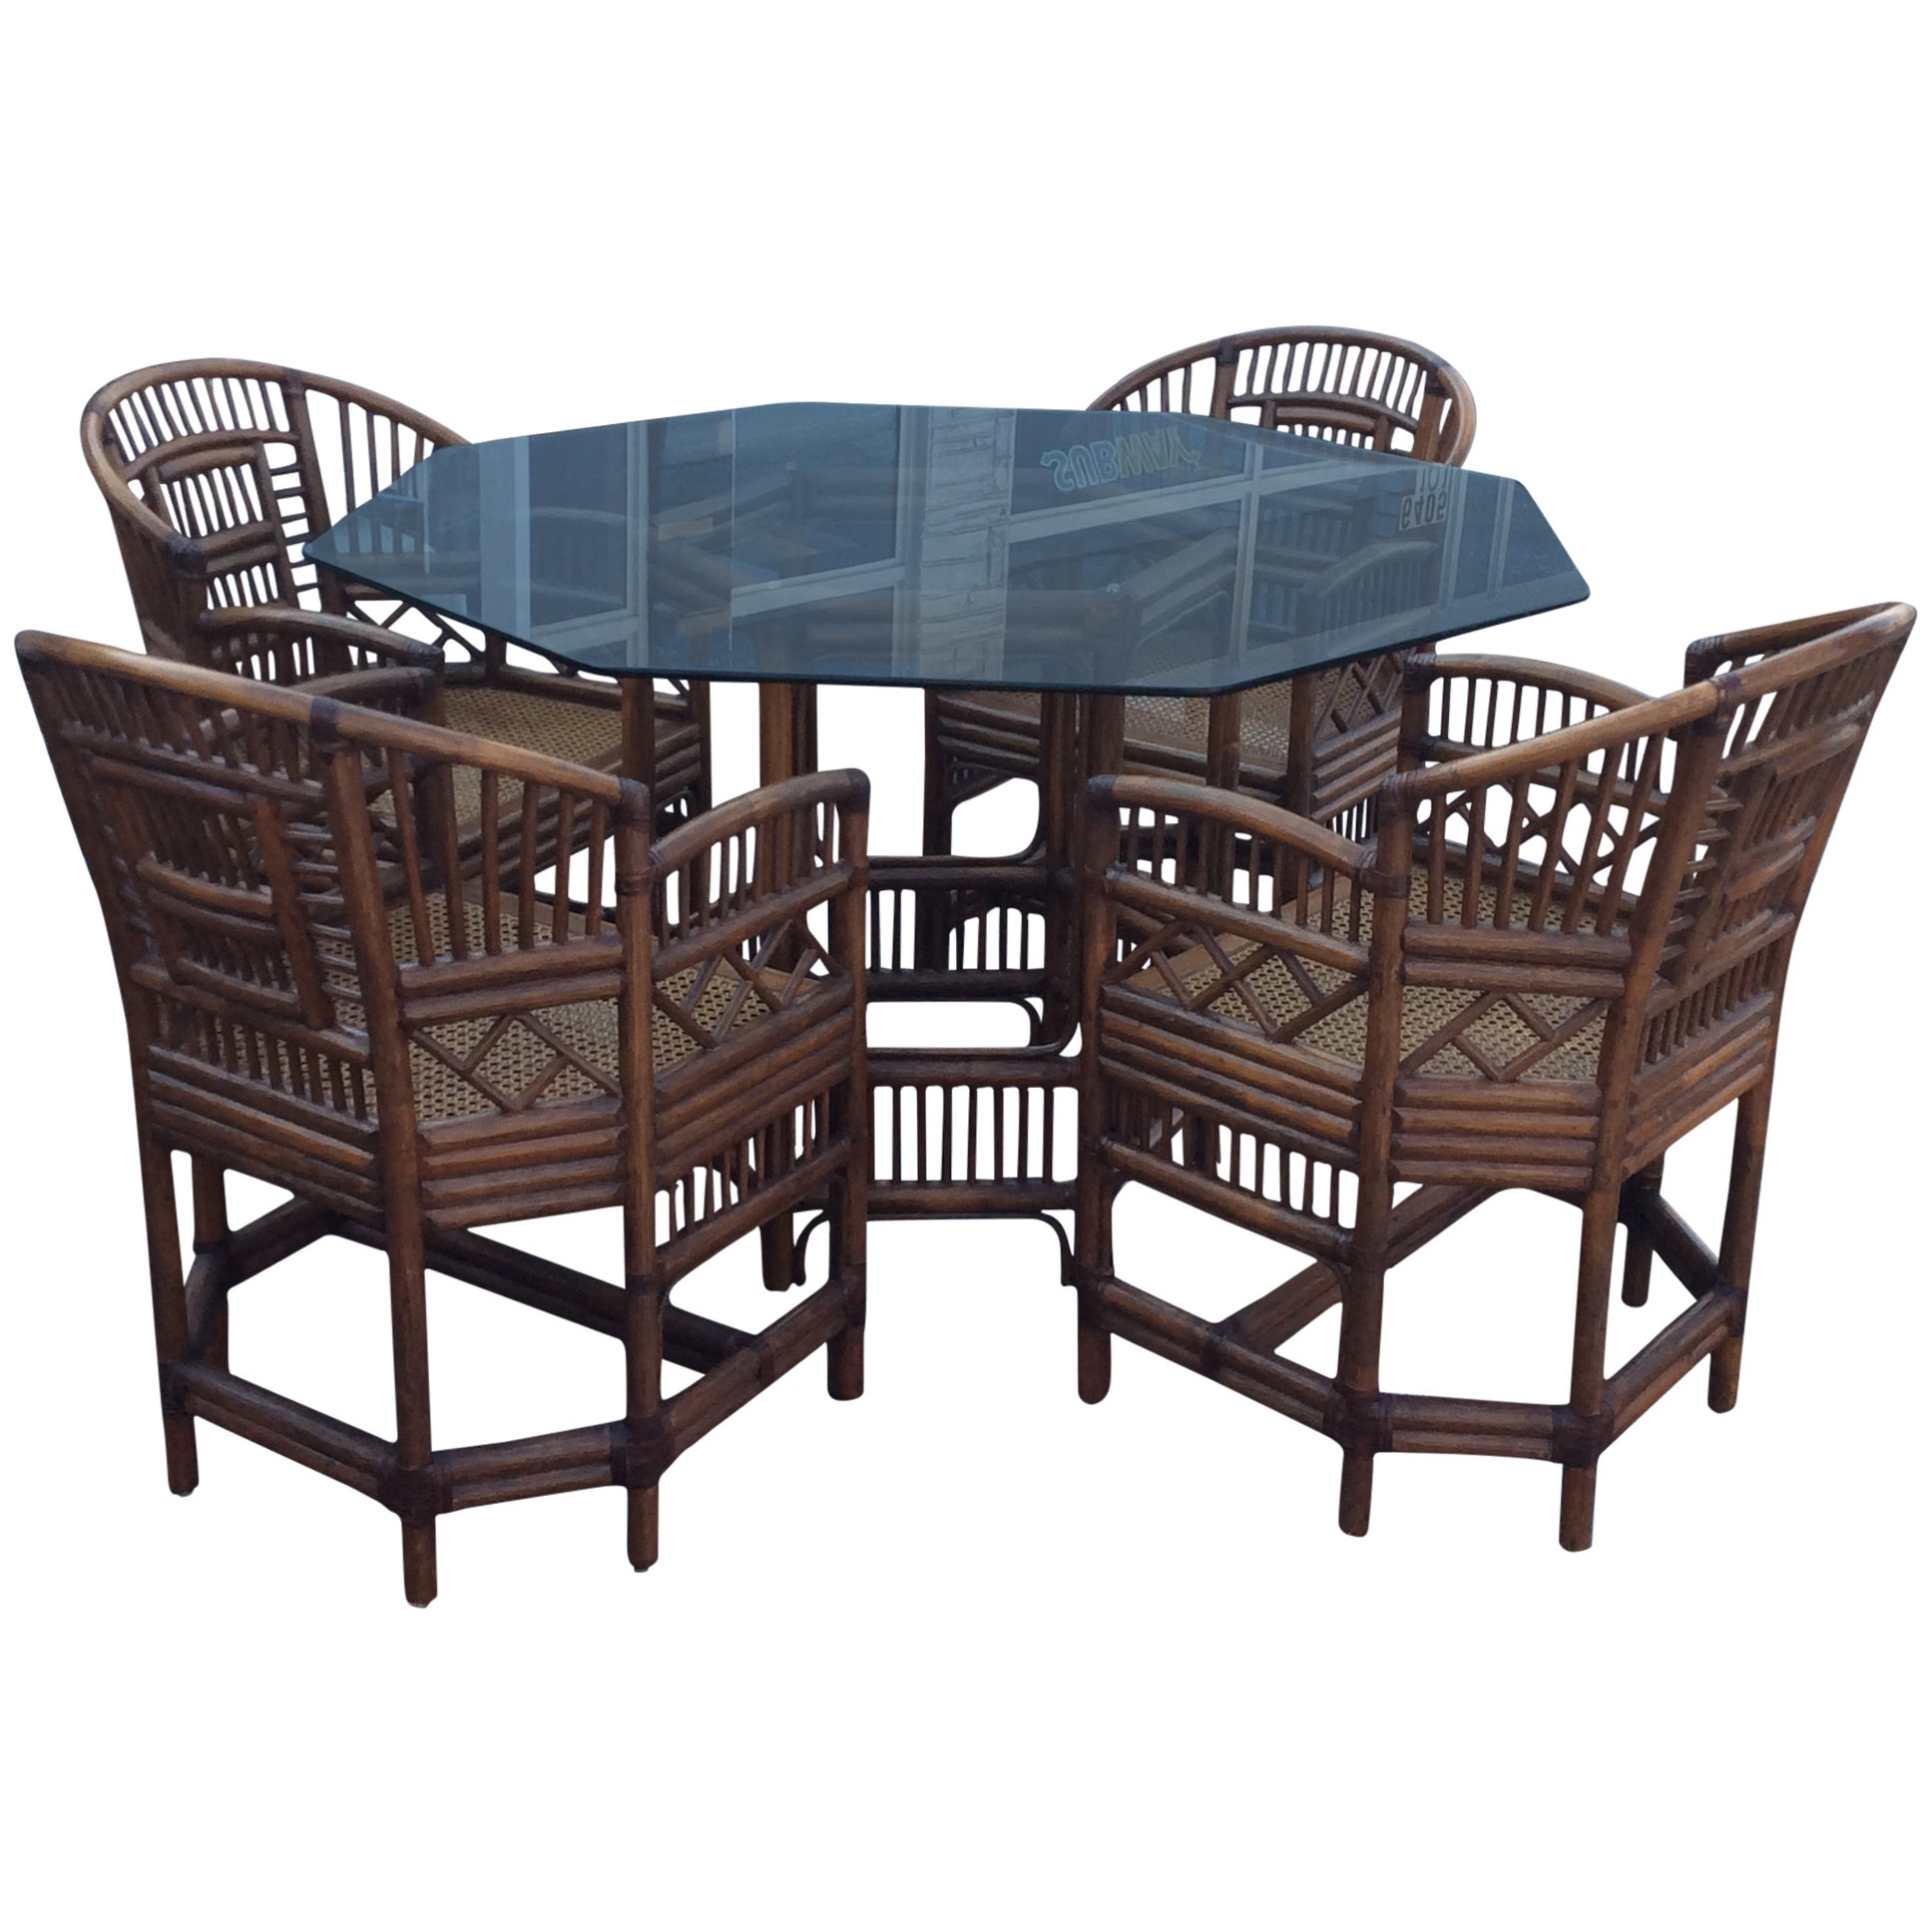 Rattan Table Brighton Style Rattan Dining Set Game Table Chinese Chippendale Four Chairs